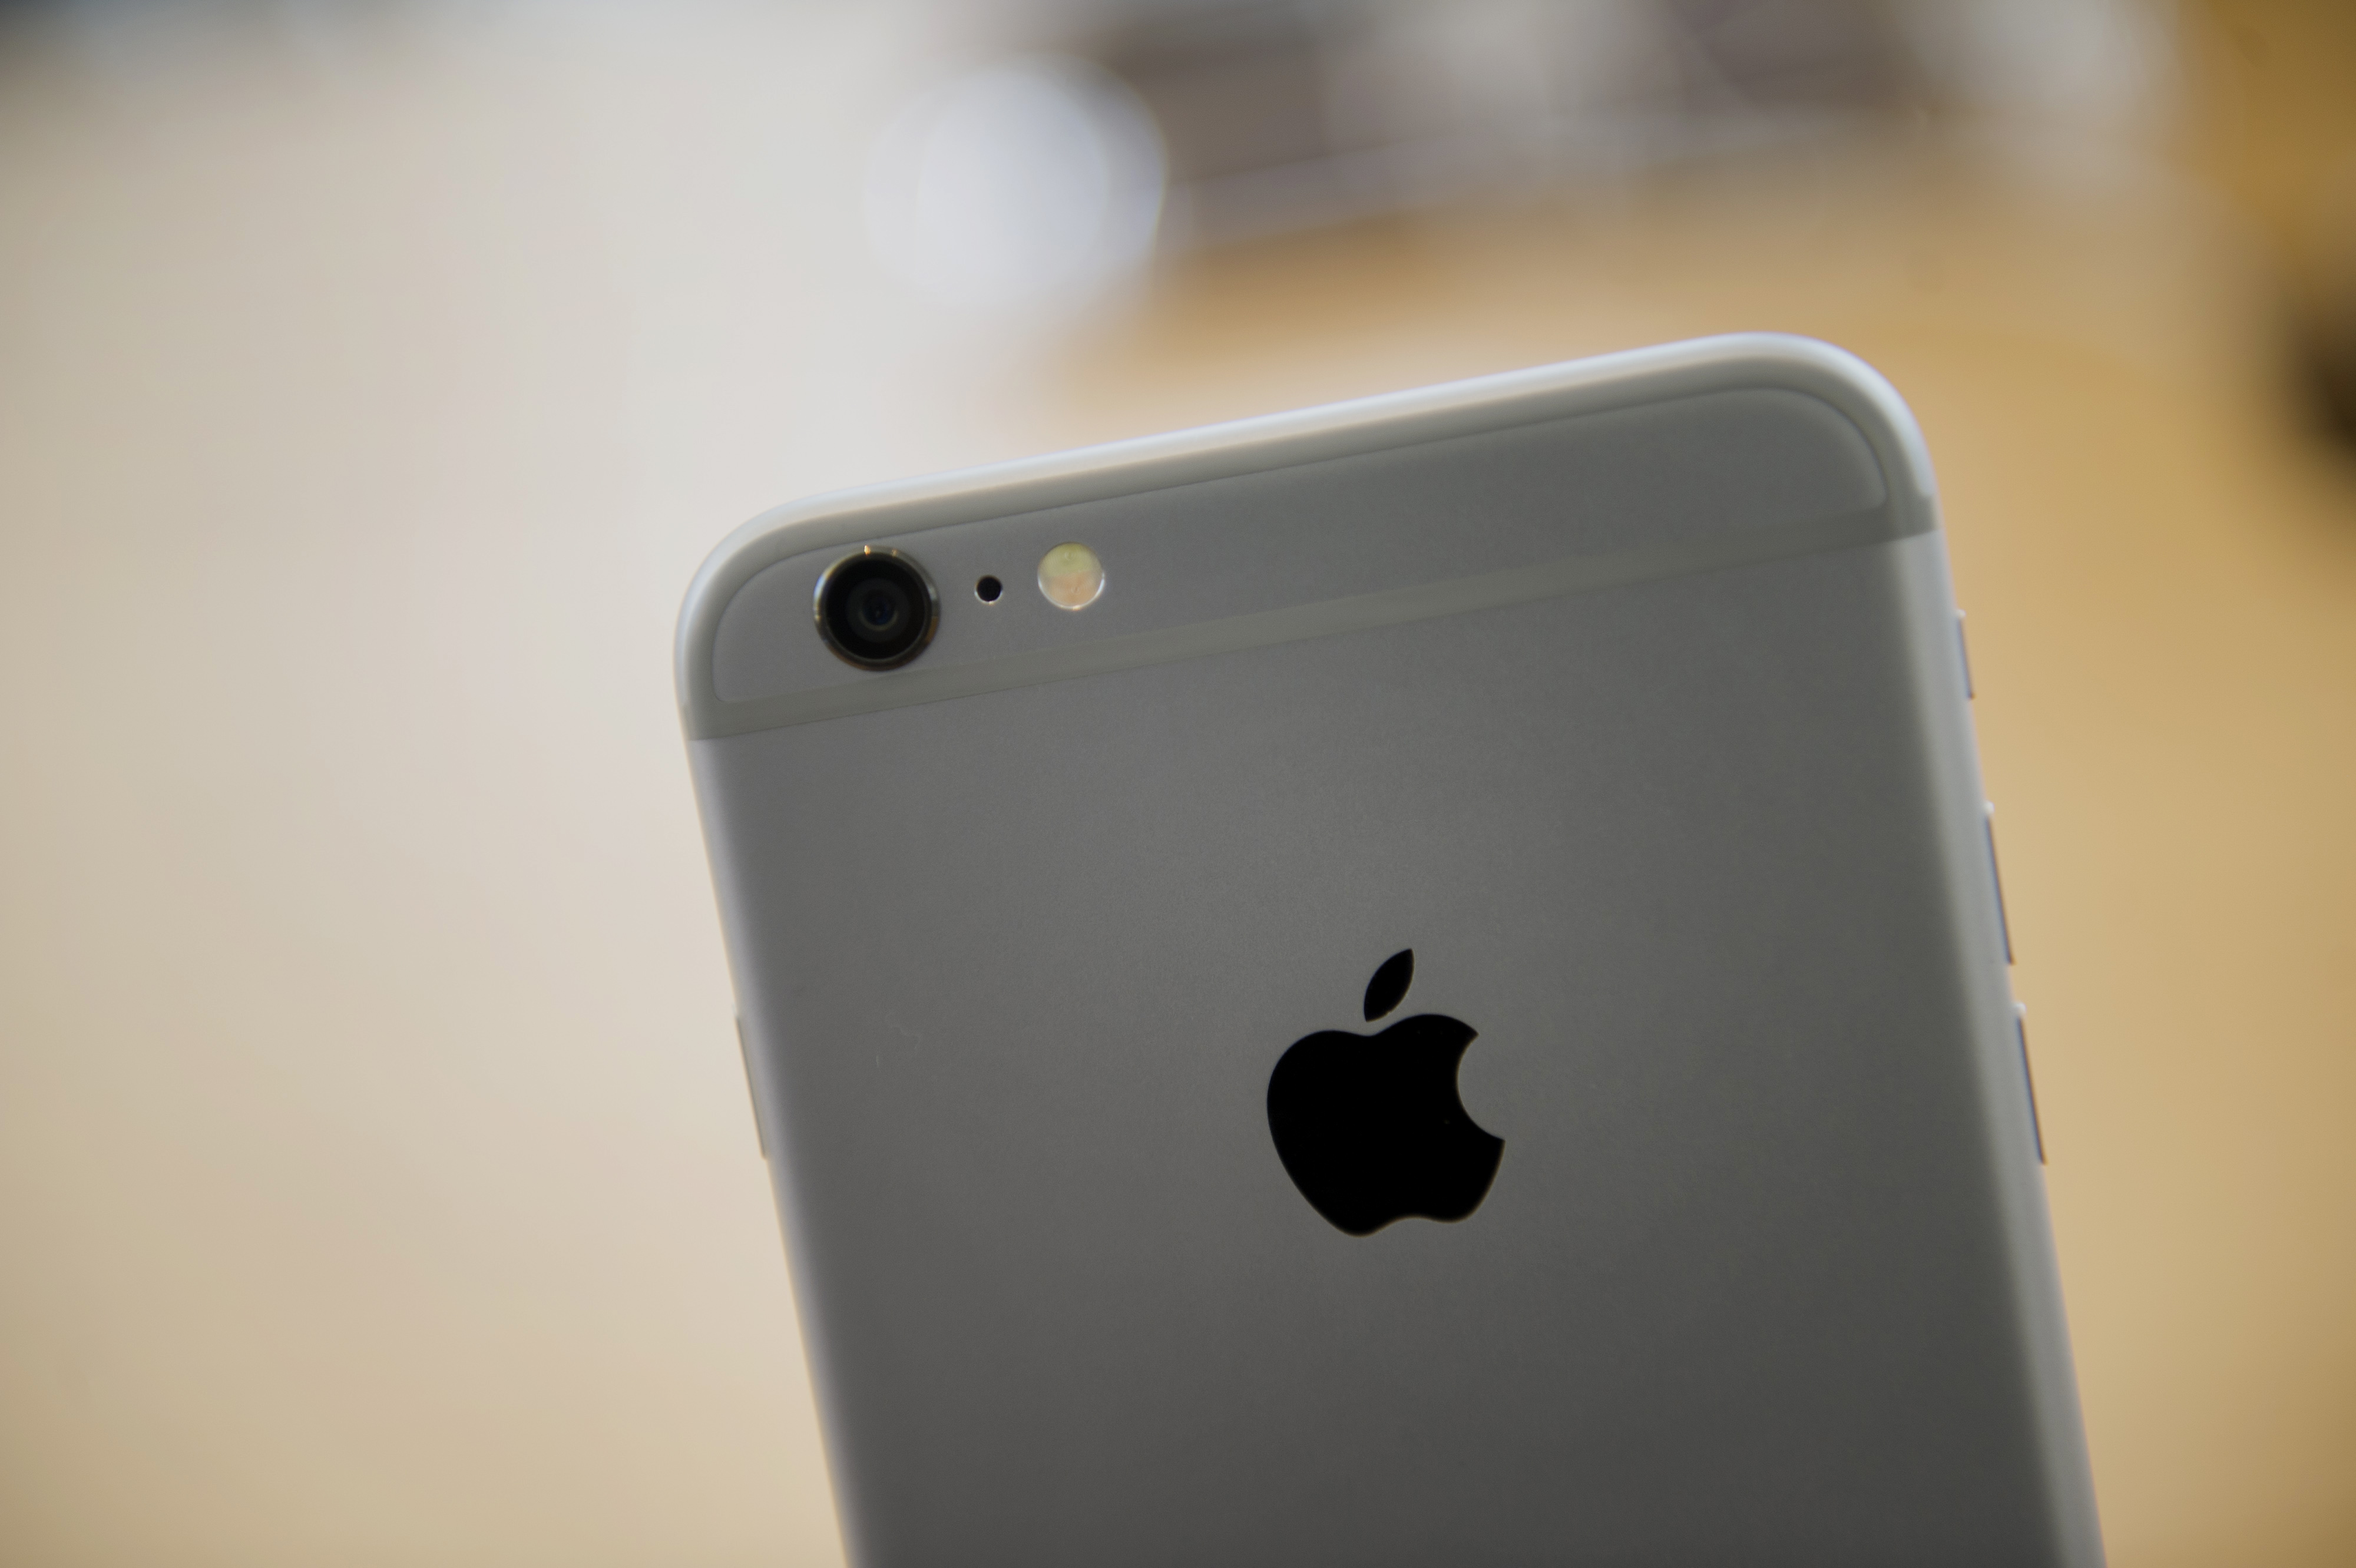 An Apple Inc. iPhone 6 is displayed during the sales launch at an Apple store in Palo Alto, California, U.S., on Friday, Sept. 19, 2014.